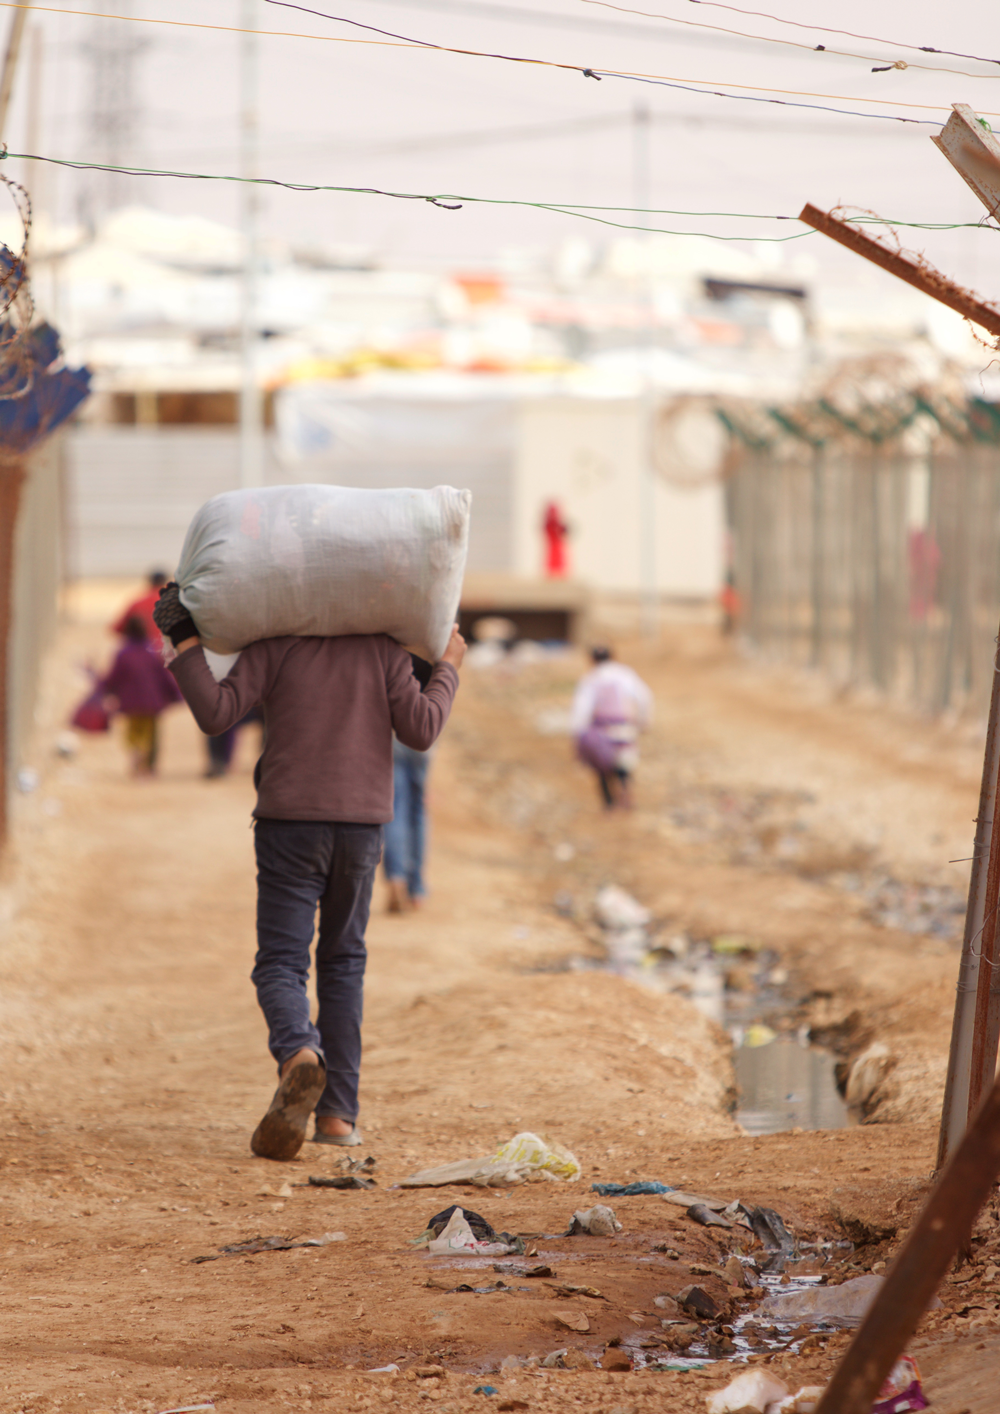 Syrian child refugee carrying load